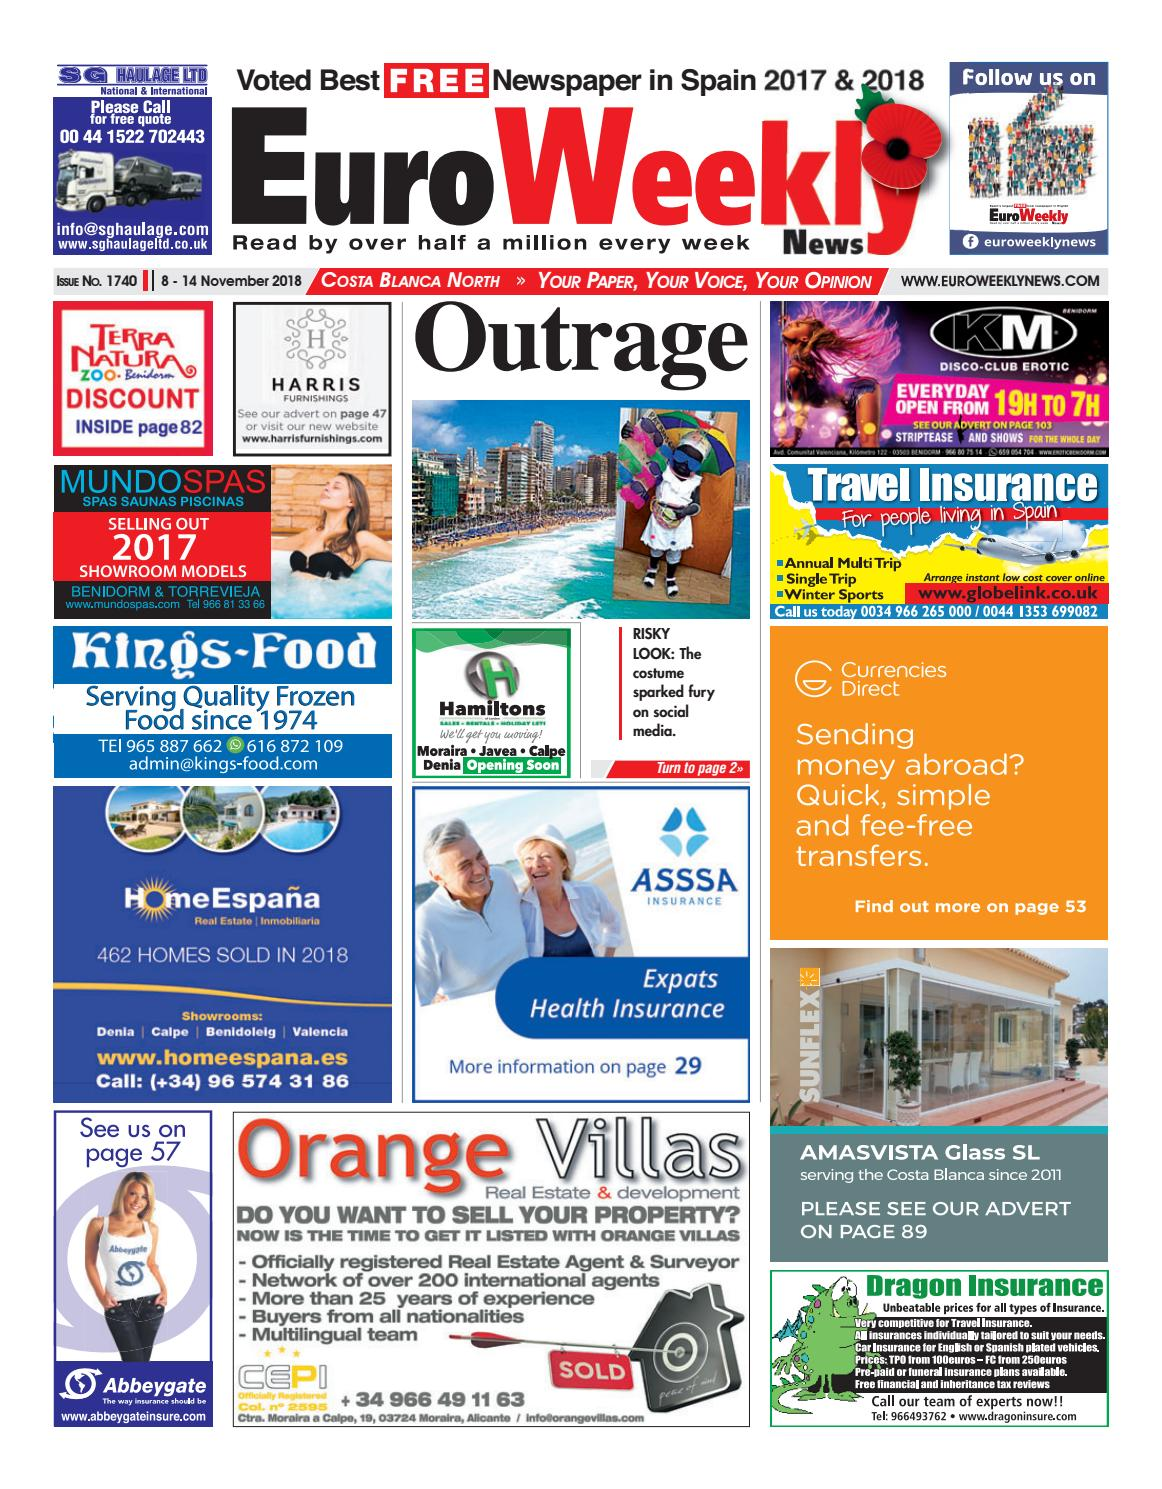 Euro Weekly News - Costa Blanca North November 8-14 2018 Issue 1740